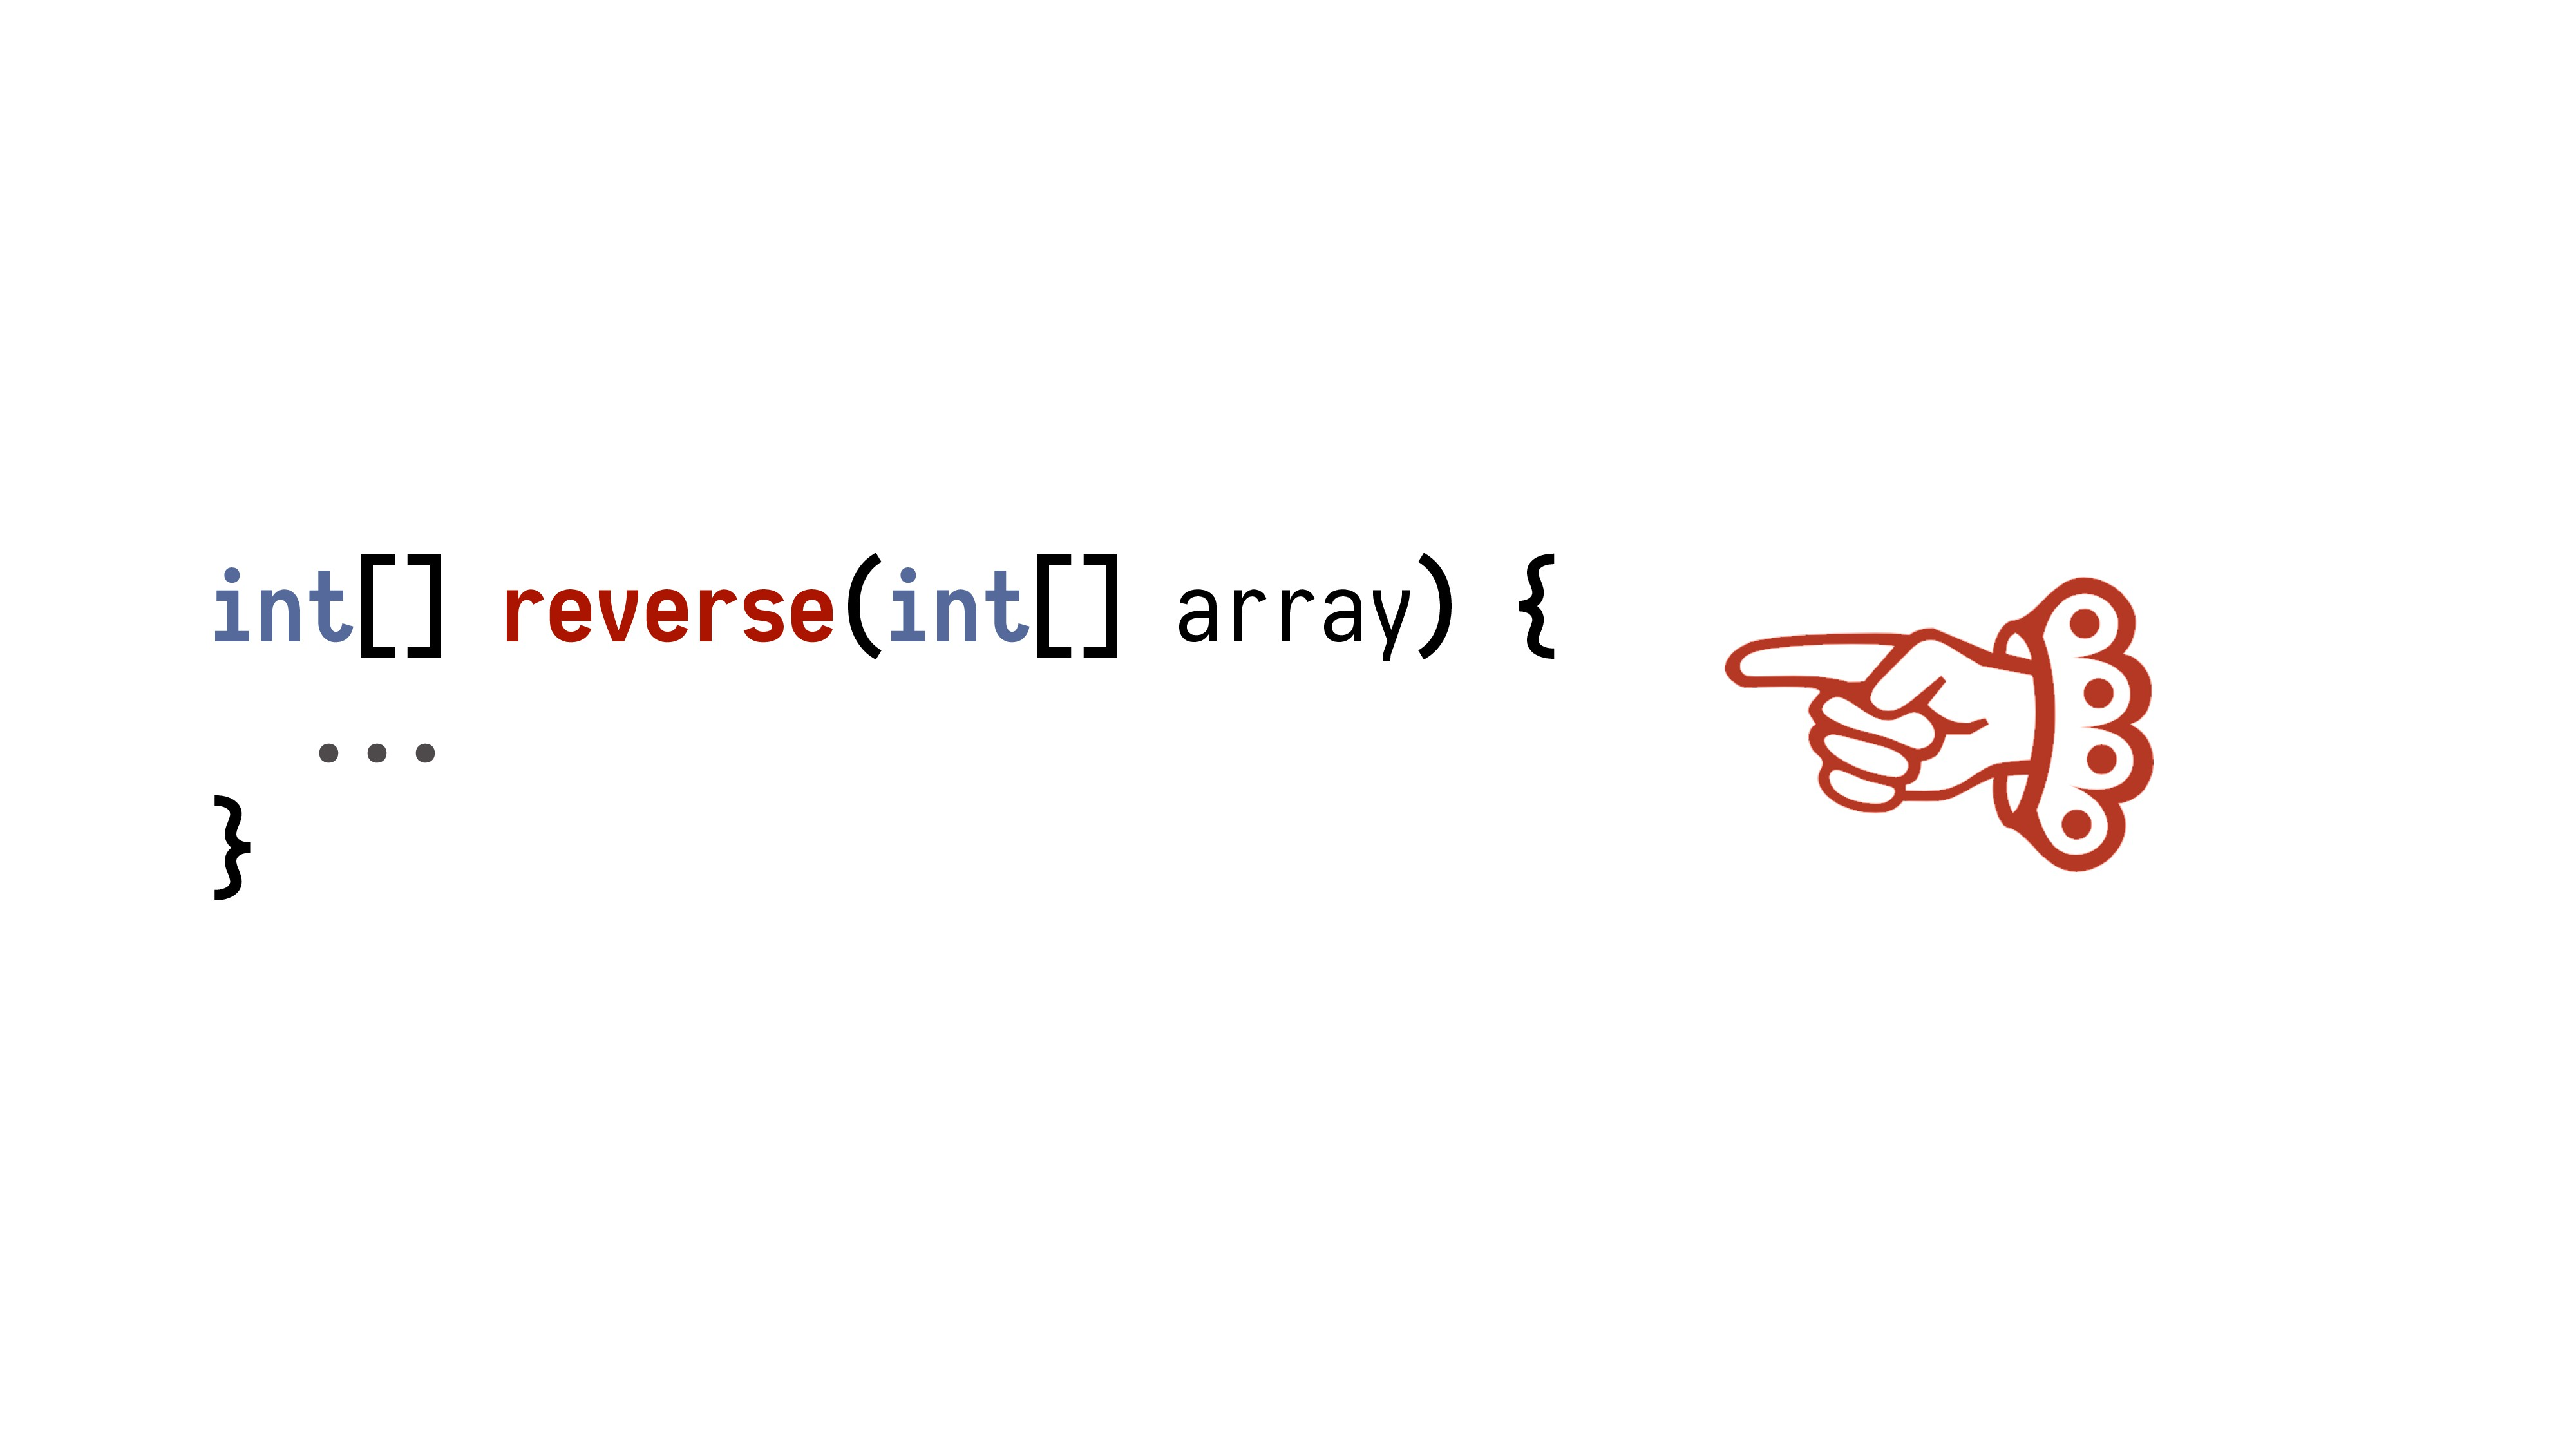 int[] reverse(int[] array) { ... }